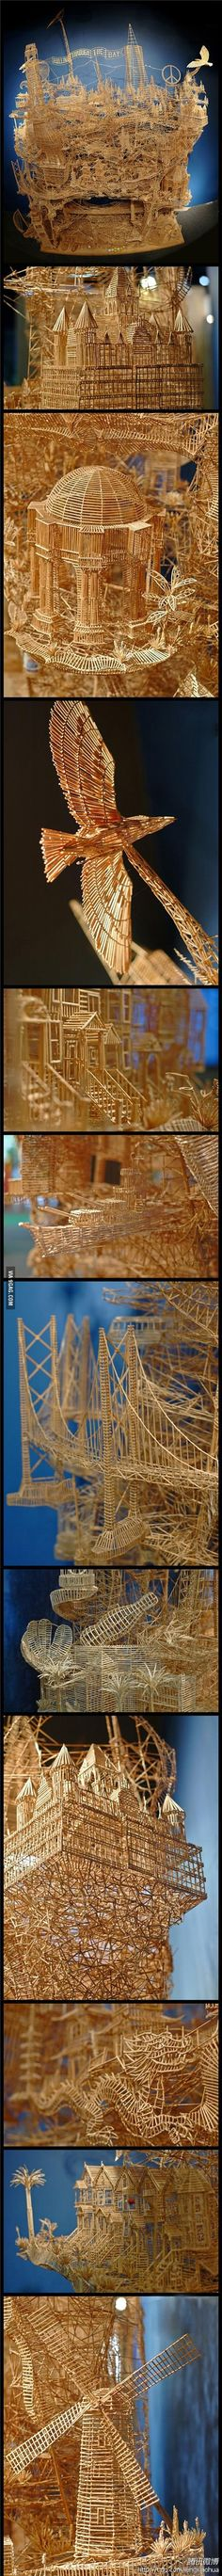 City made by toothpick